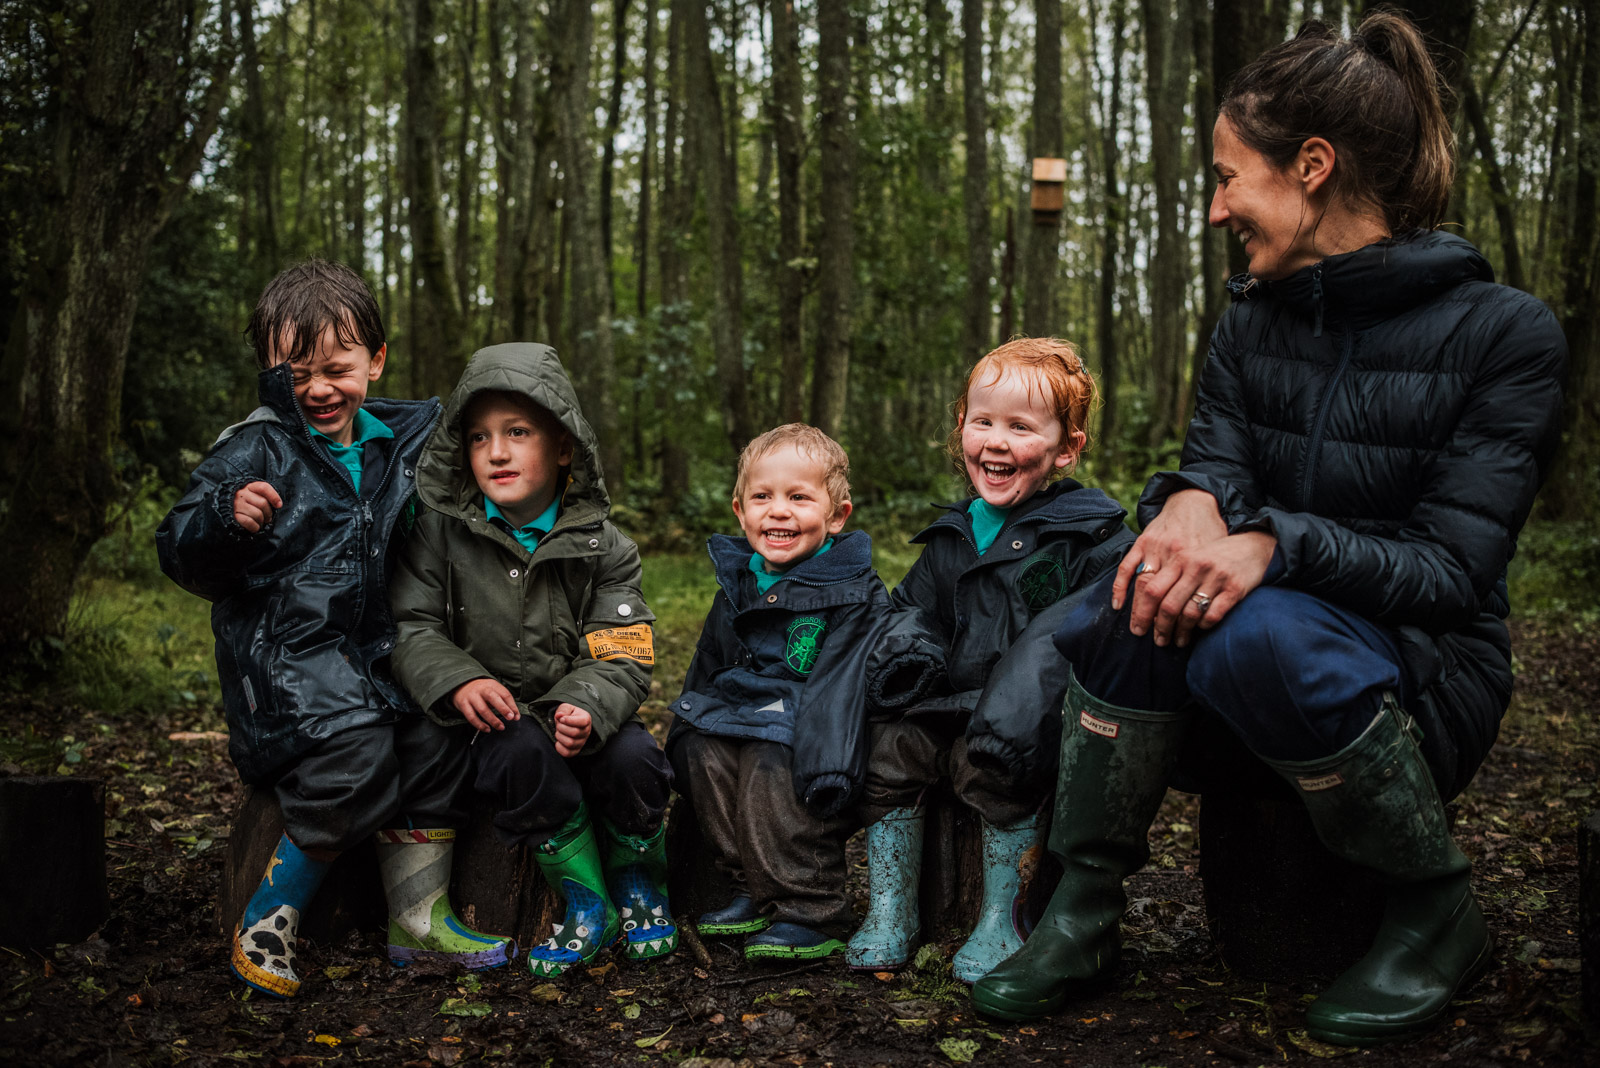 School photographer, brand photography by The Ginger Collective of forest school at Berkshire school Thorngrove